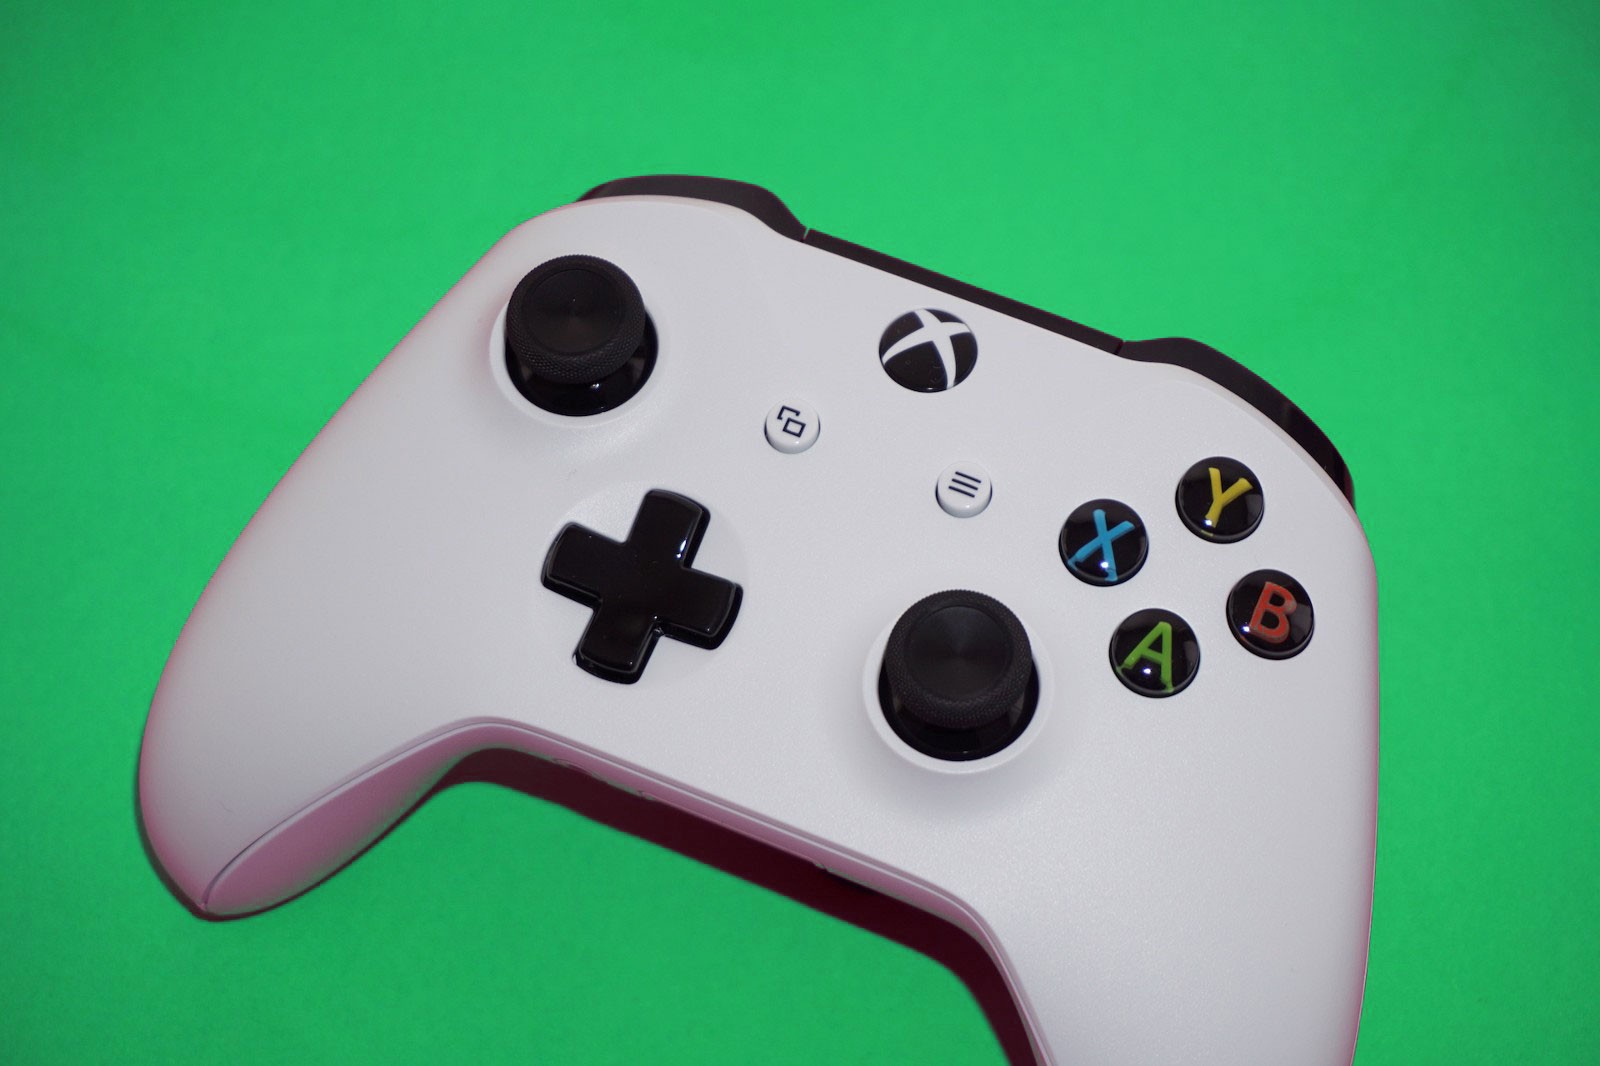 Does the new Xbox controller work with your phone or laptop?